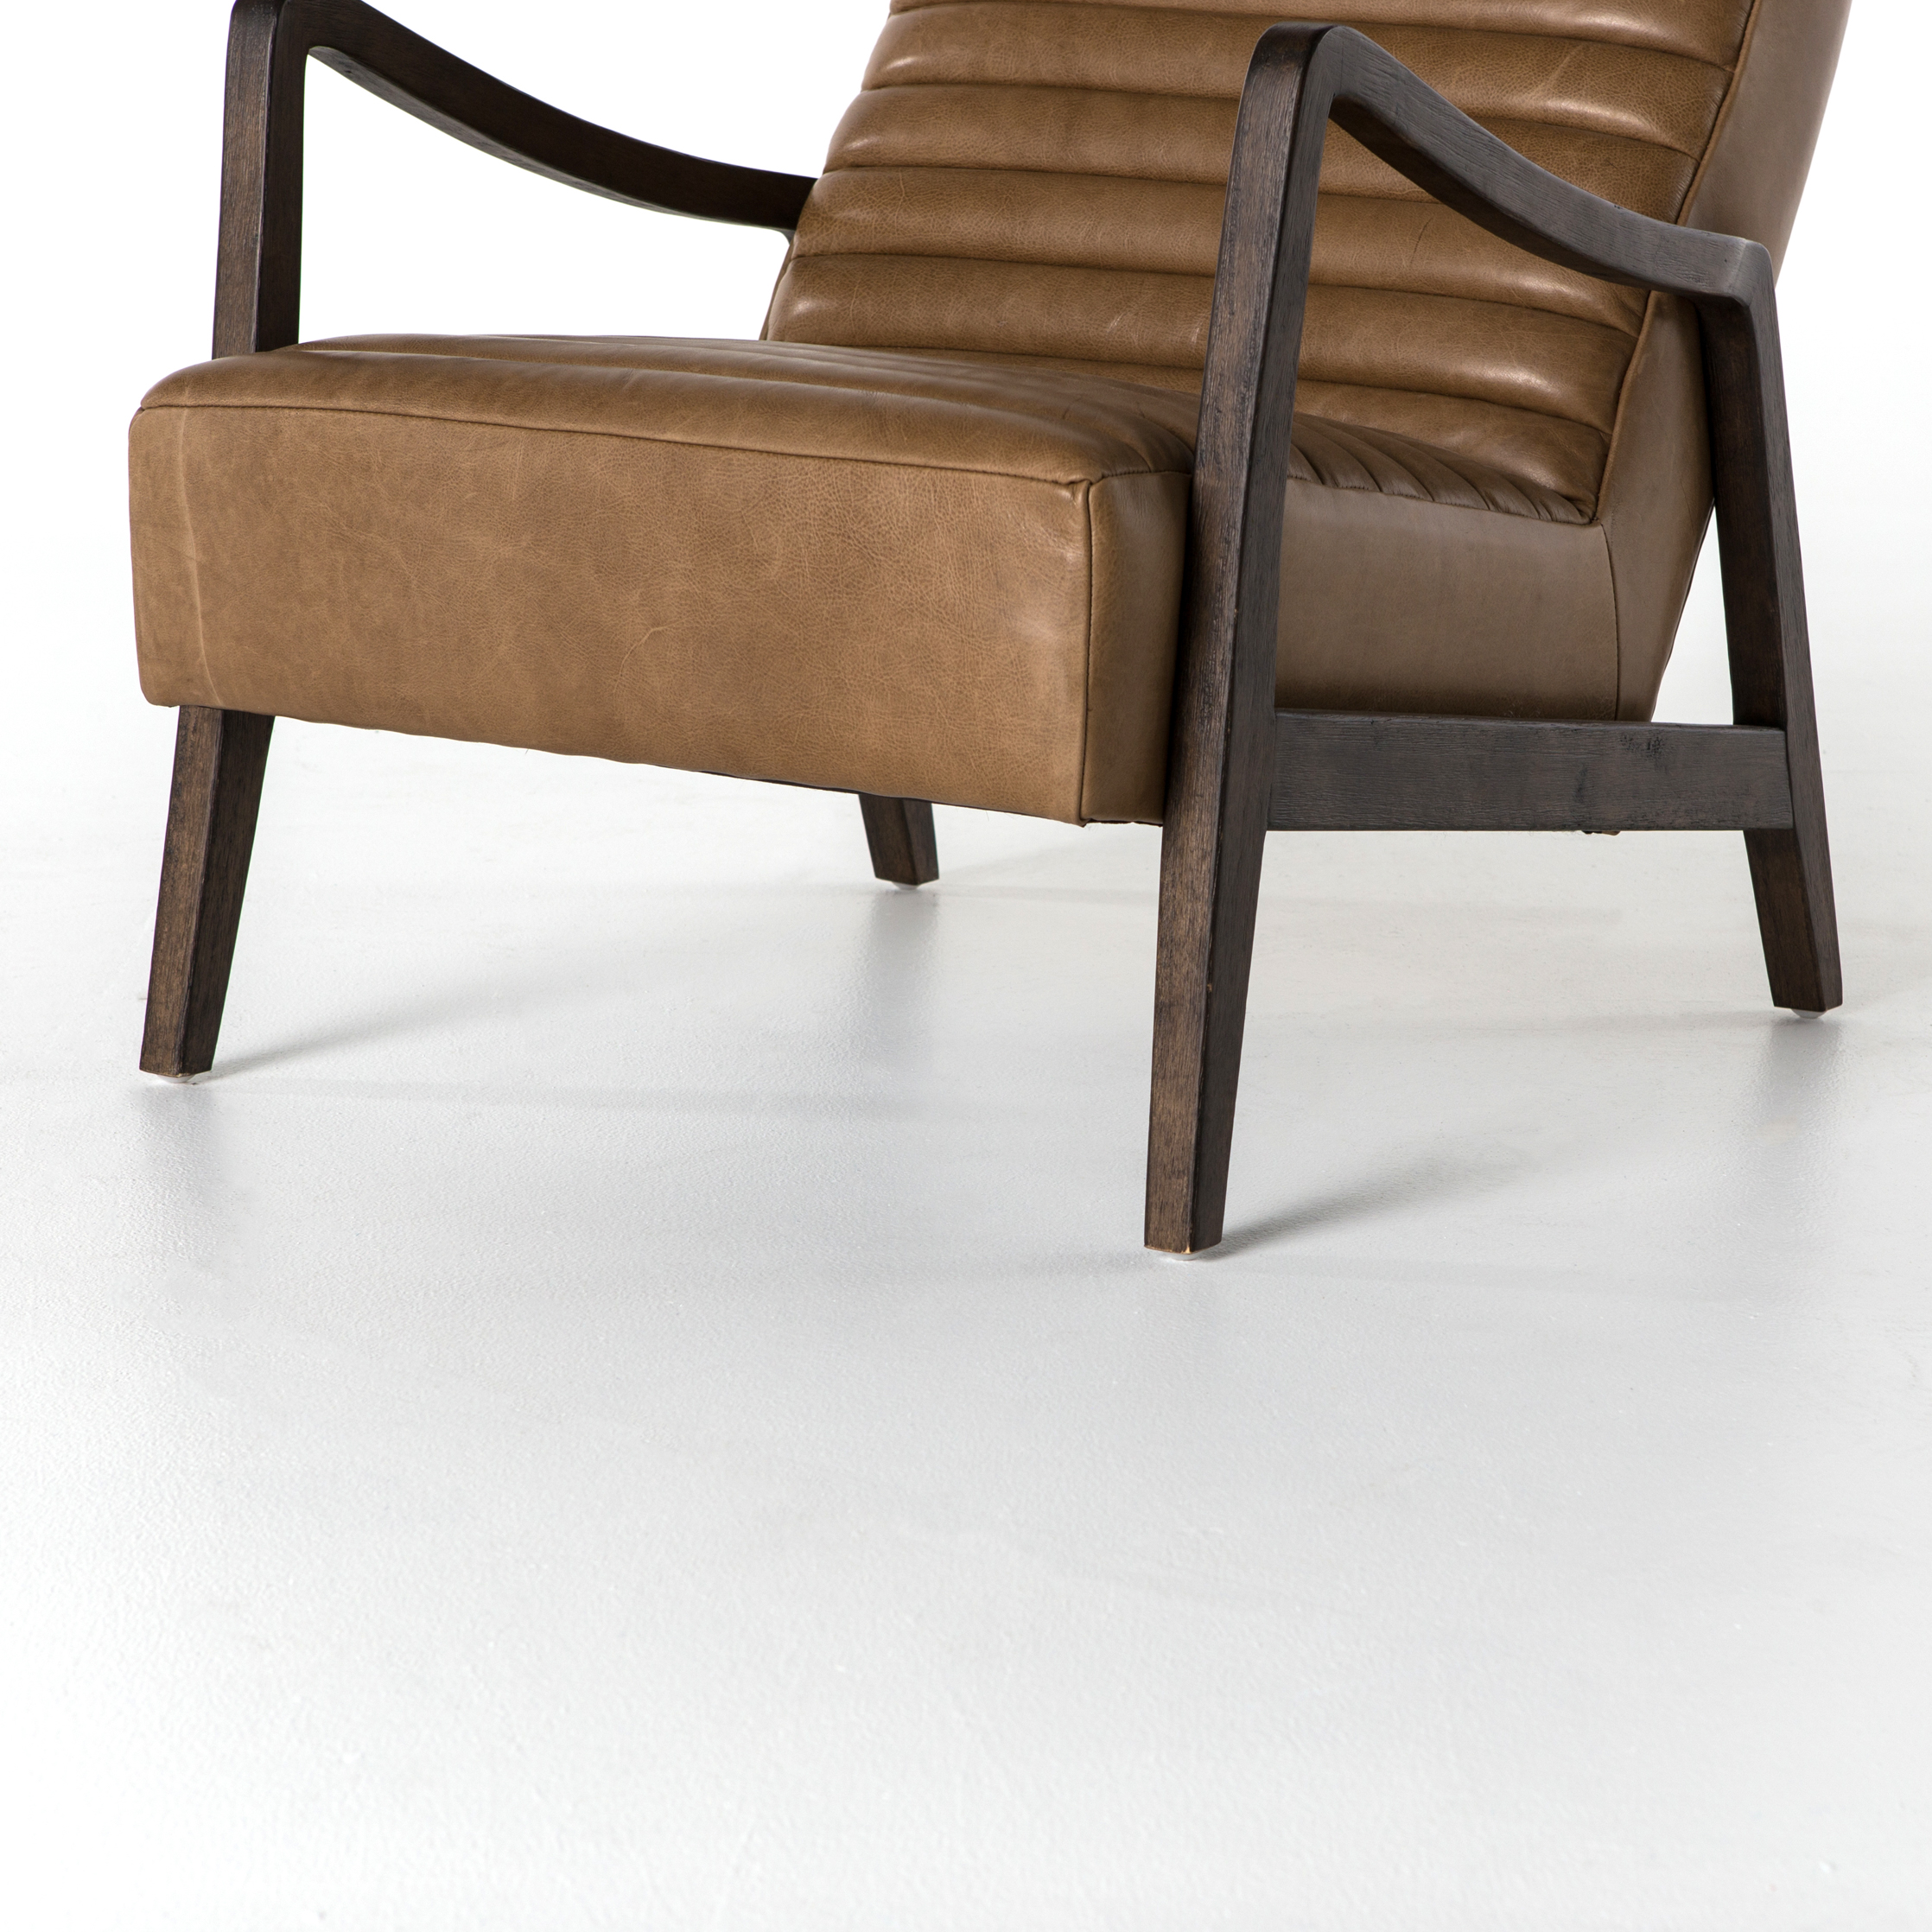 soft chairs spread the hips wingback leather chair uk chance hip furniture